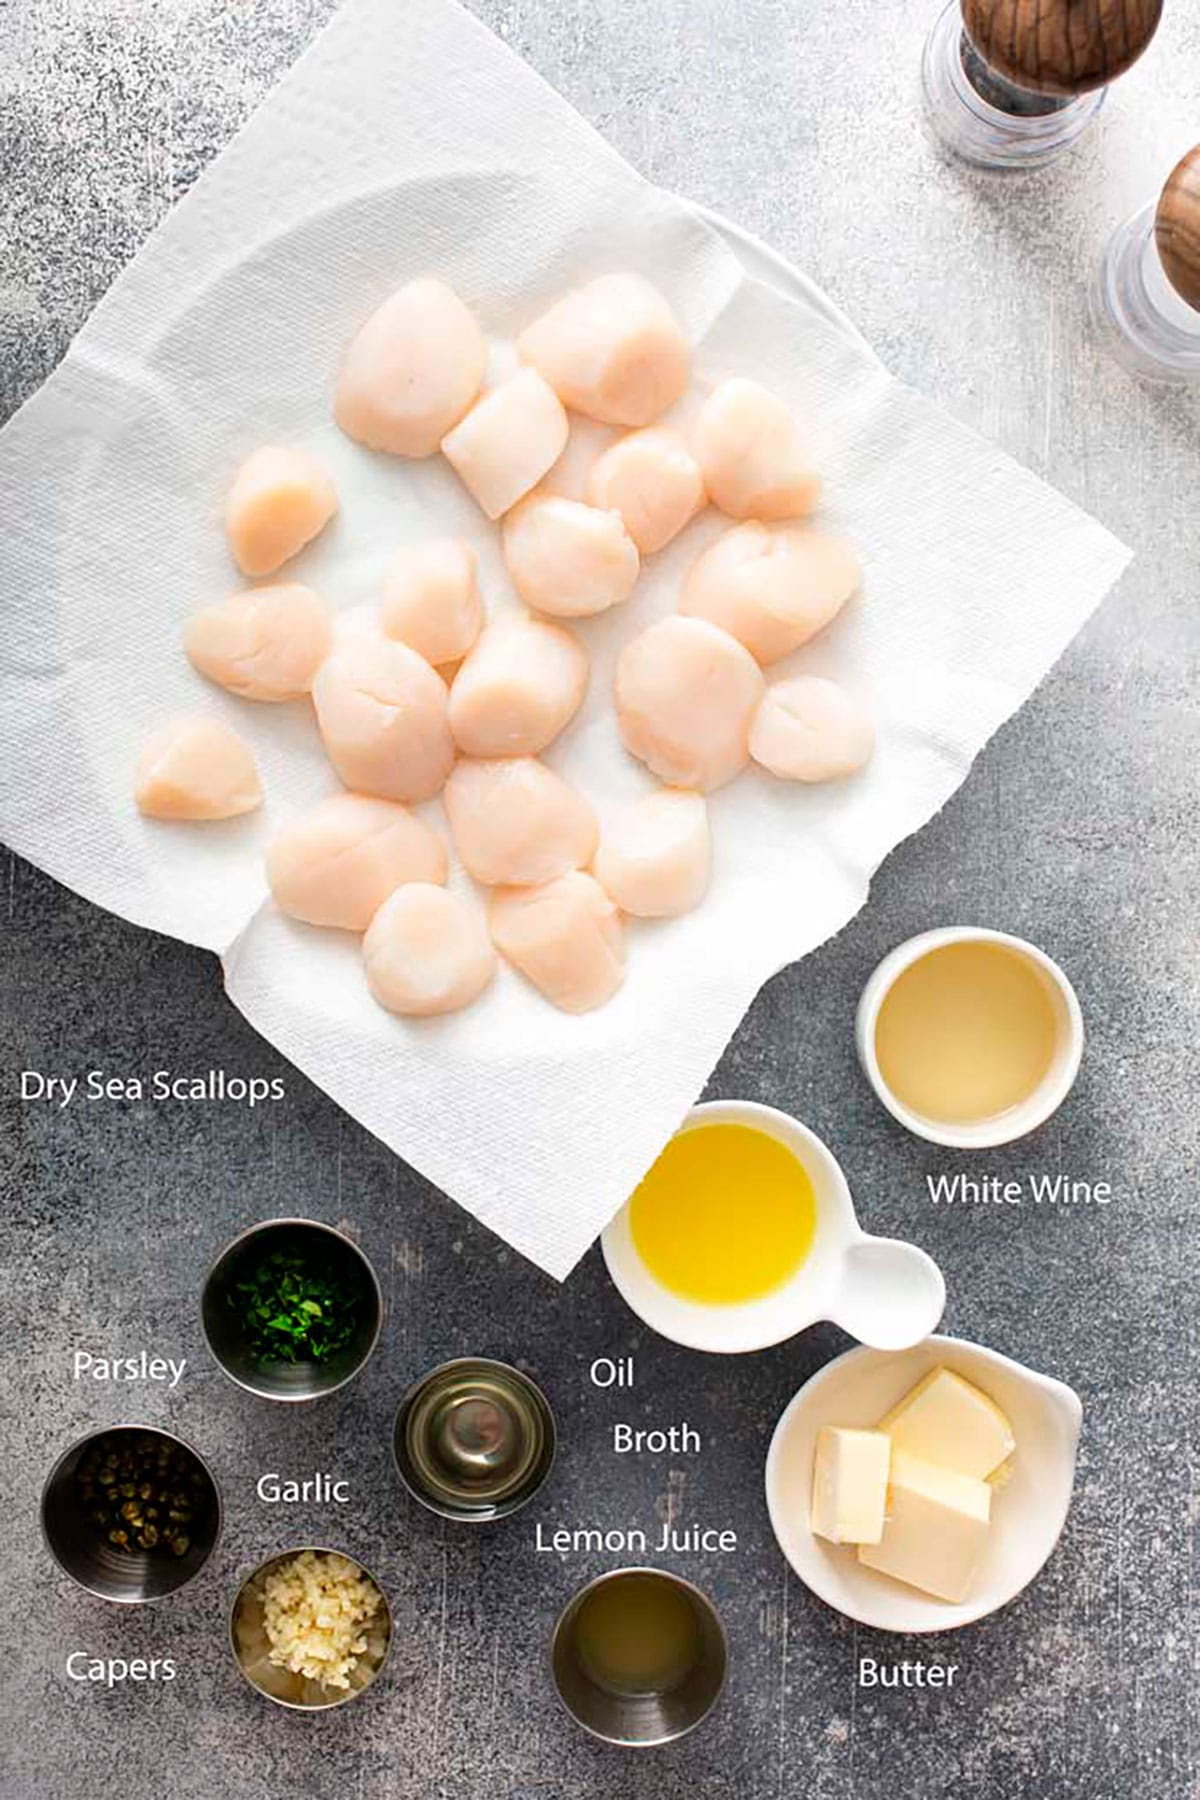 Ingredients to make seared scallops with lemon garlic butter sauce on a gray surface